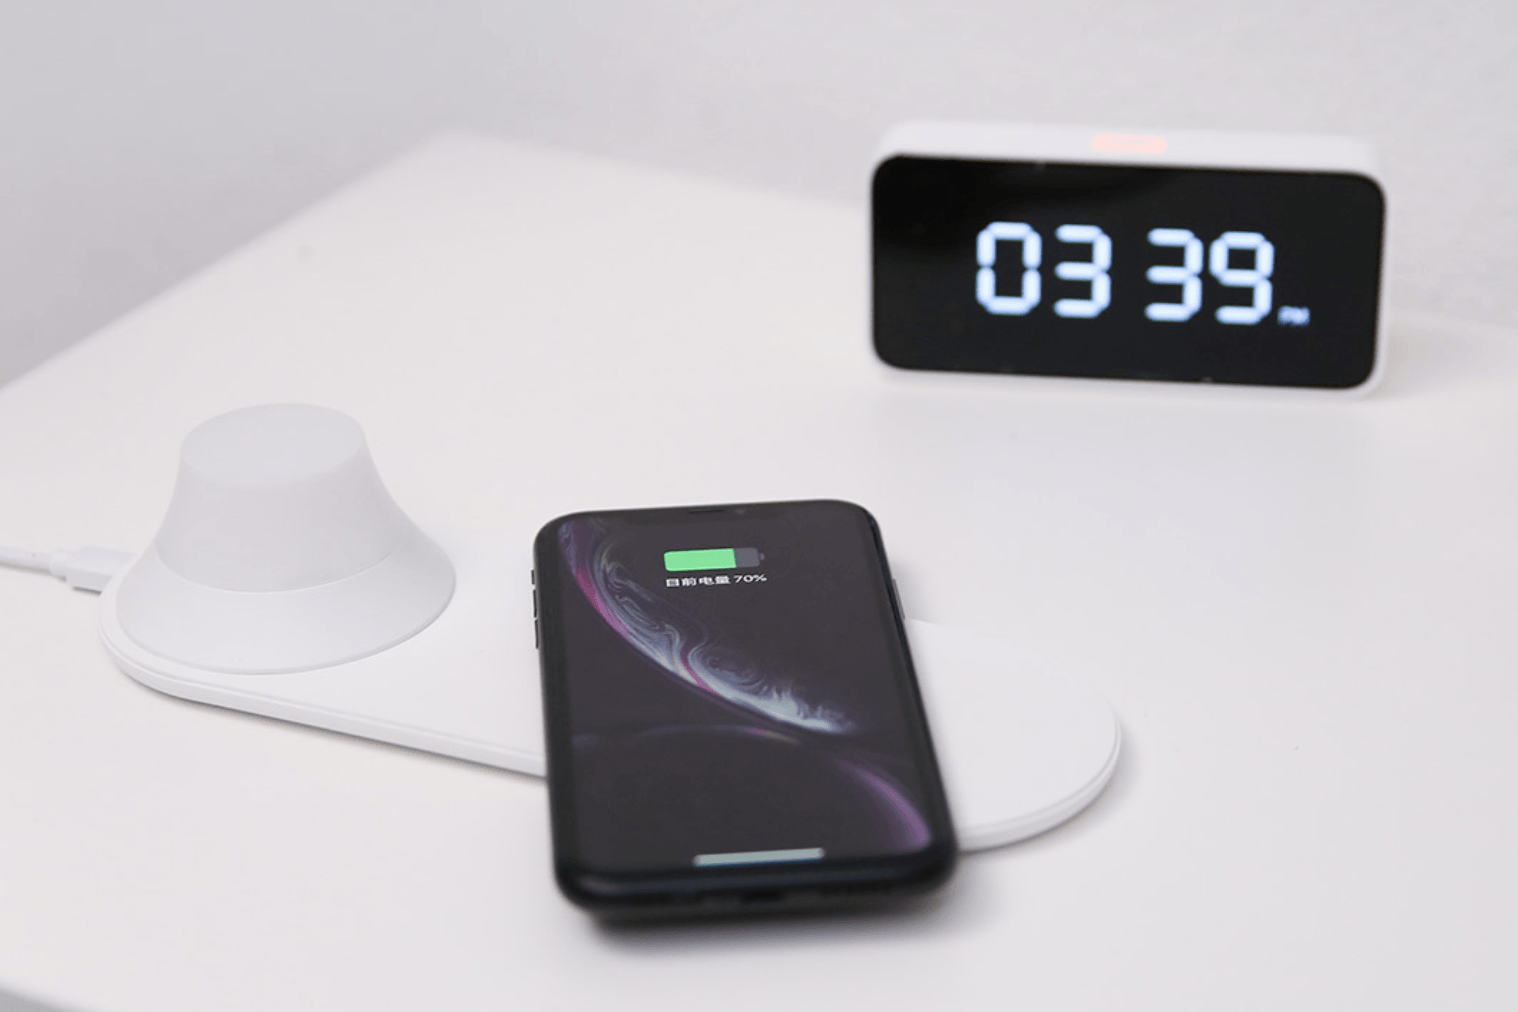 Yeelight induction charger with built-in night light